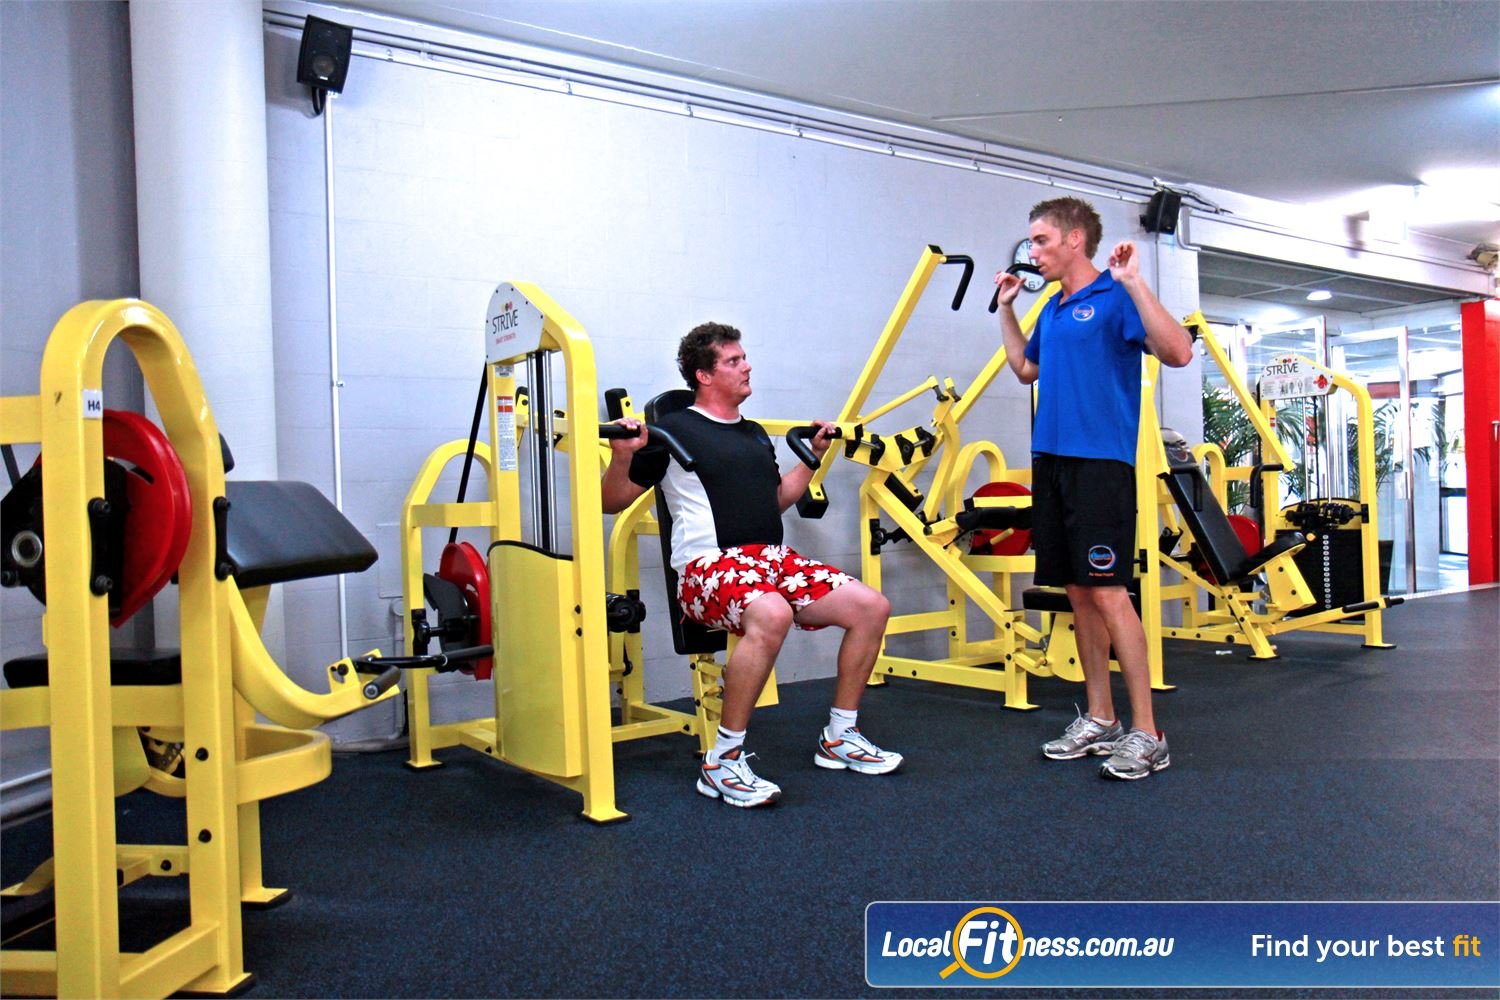 Goodlife Health Clubs Alexandra Hills Our Alexandra Hills gym includes the innovative 1-2-3 Strive strength series.